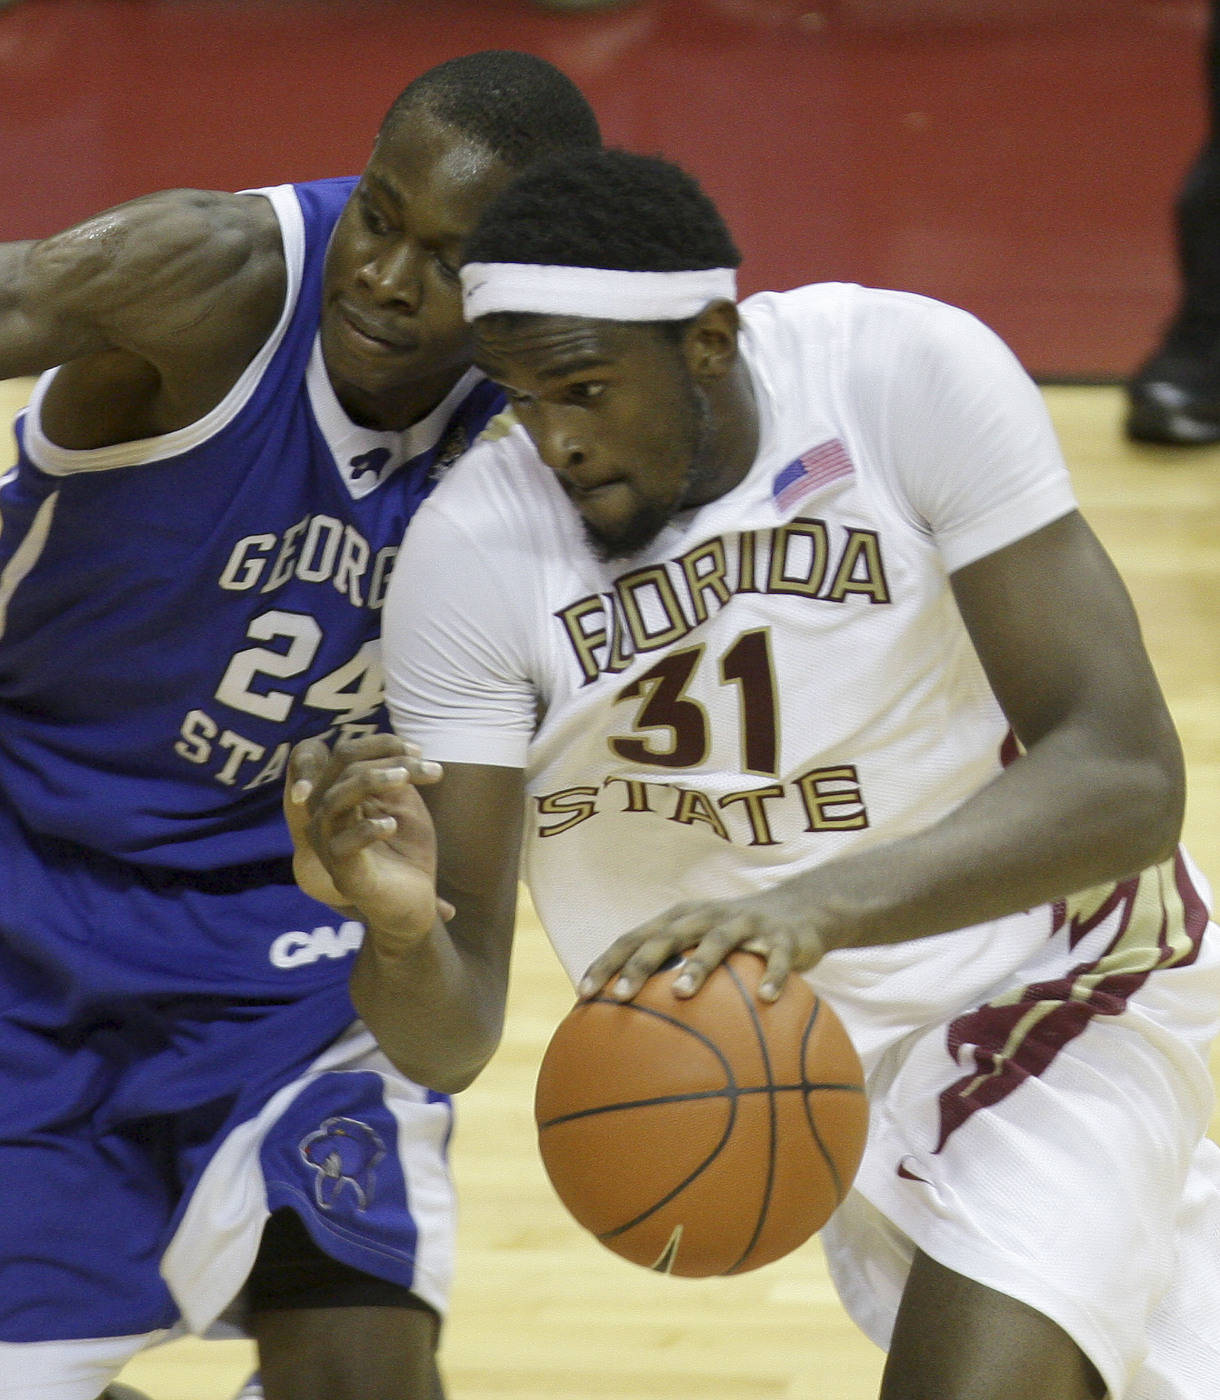 Florida State's Chris Singleton, right, drives past Georgia State's Ousman Krubally during the second half of an NCAA college basketball game, on Tuesday, Dec. 15, 2009, in Tallahassee, Fla.  Florida State won 62-55.(AP Photo/Phil Coale)